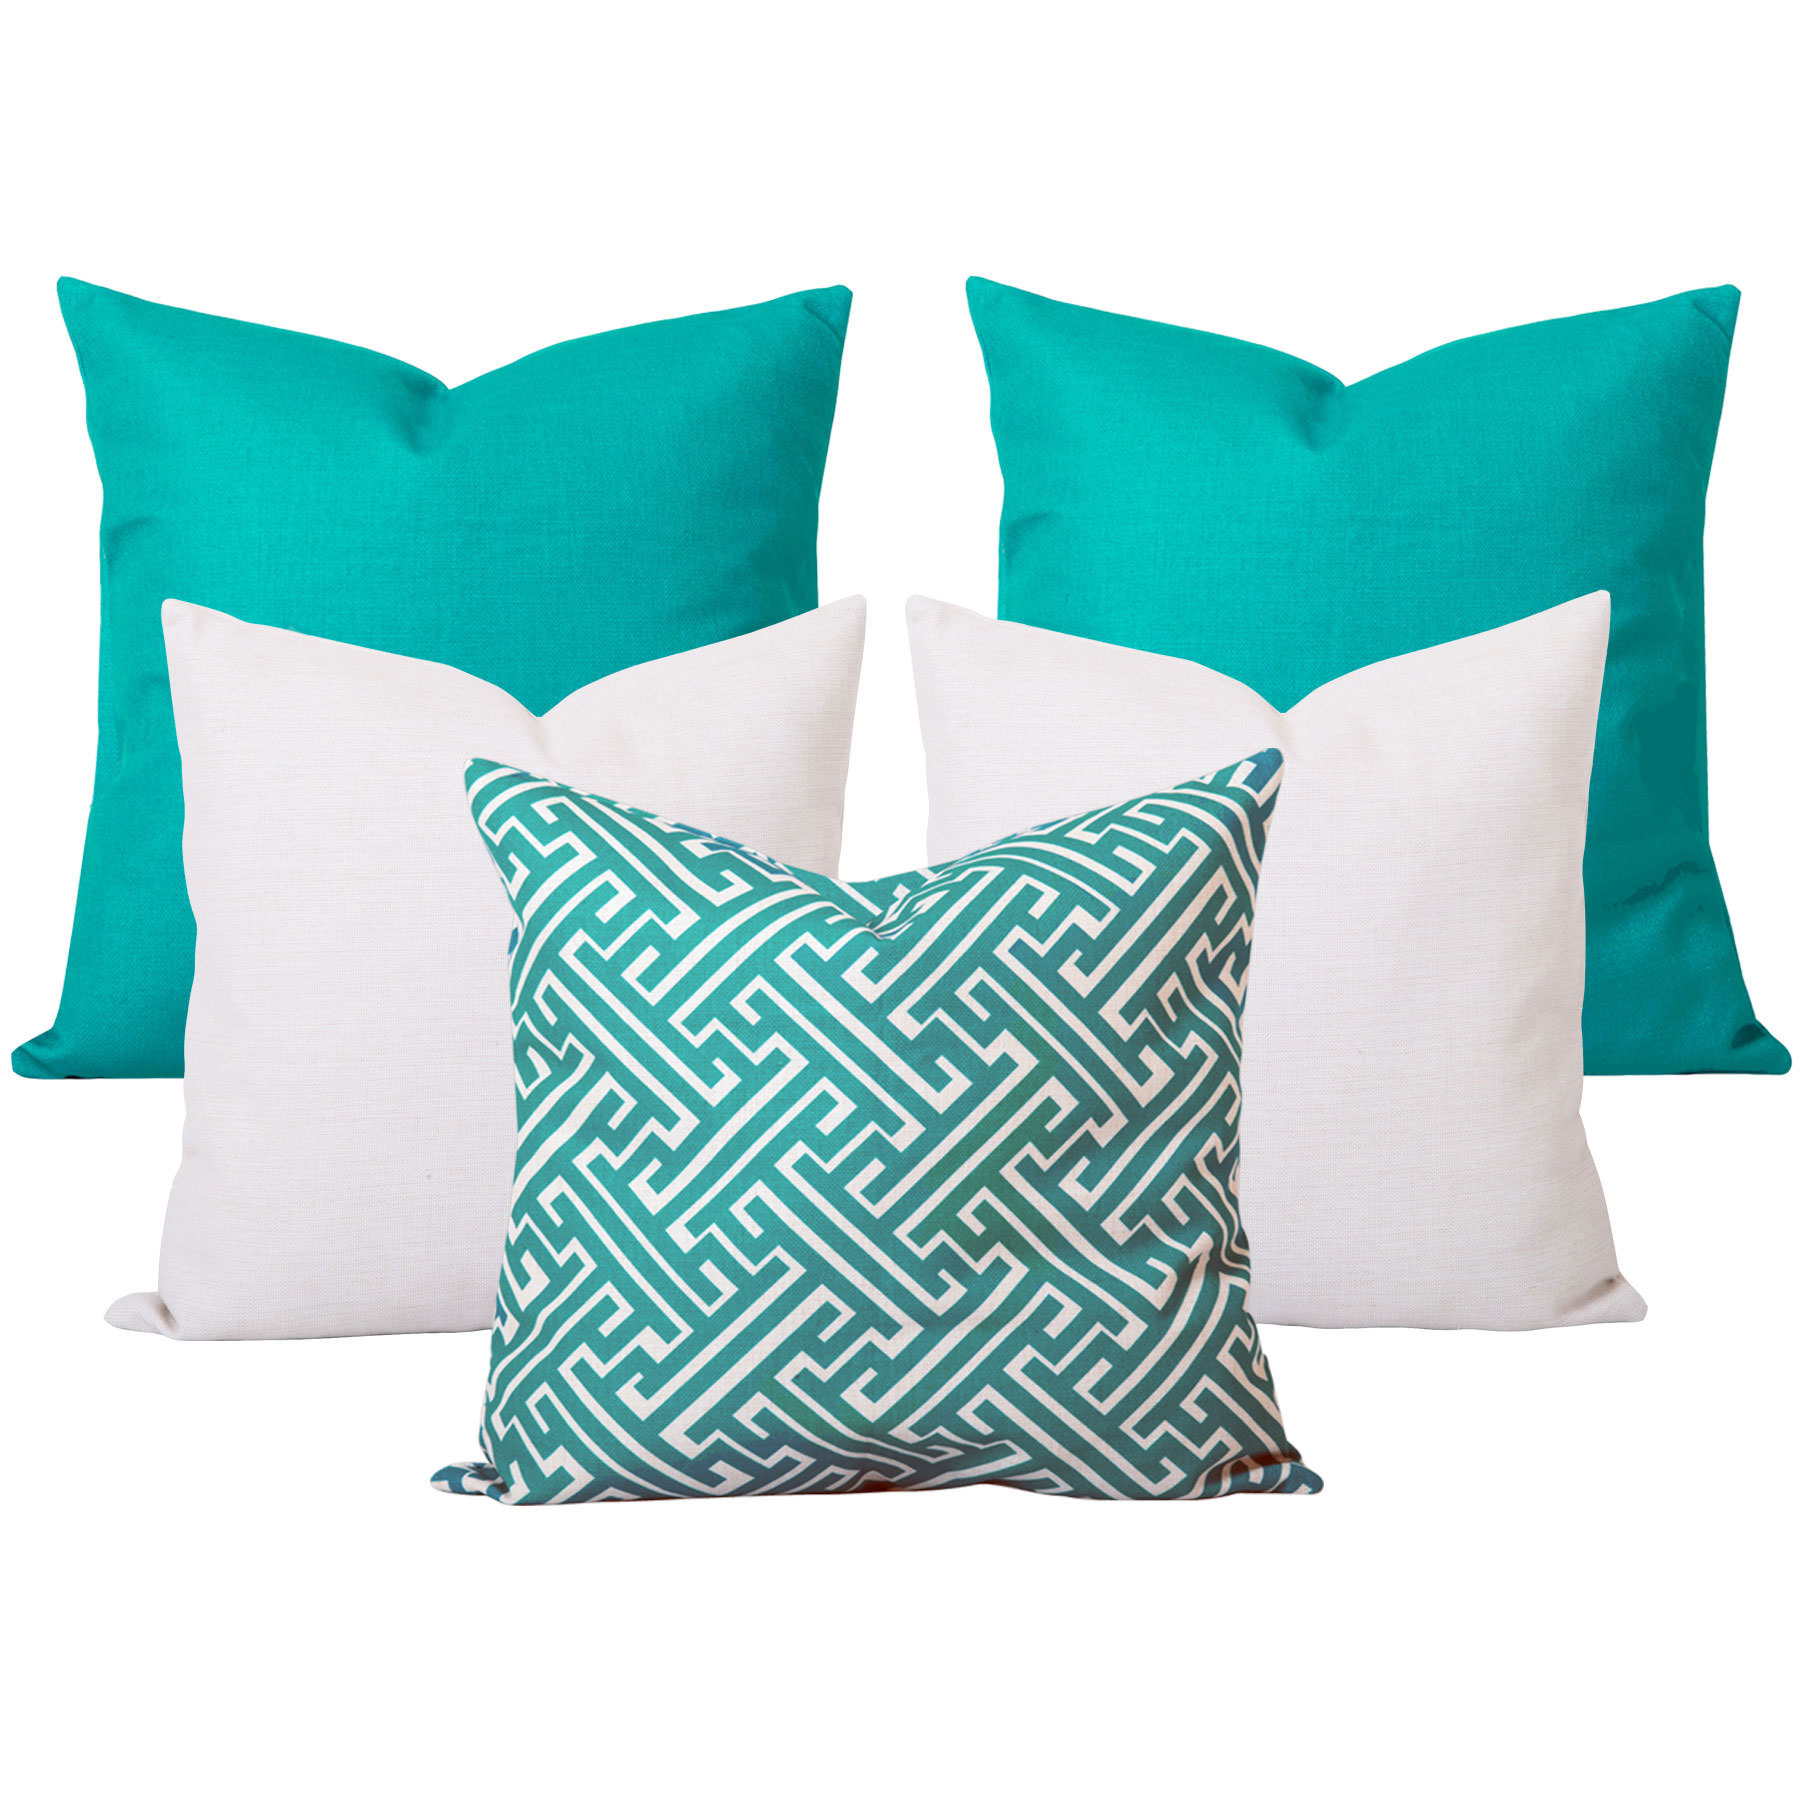 Georgia-Maze-Turquoise-5-Cushion-Set